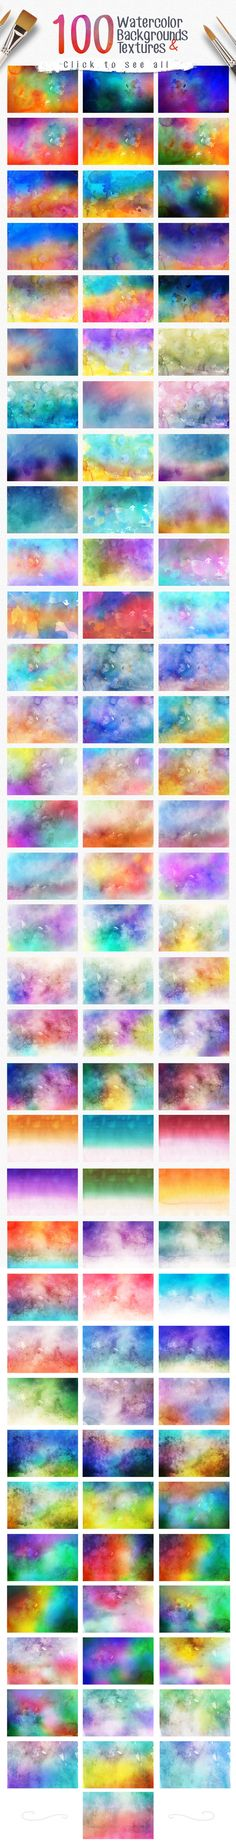 100 Watercolor Backgrounds Textures by ArtistMef on Creative Market